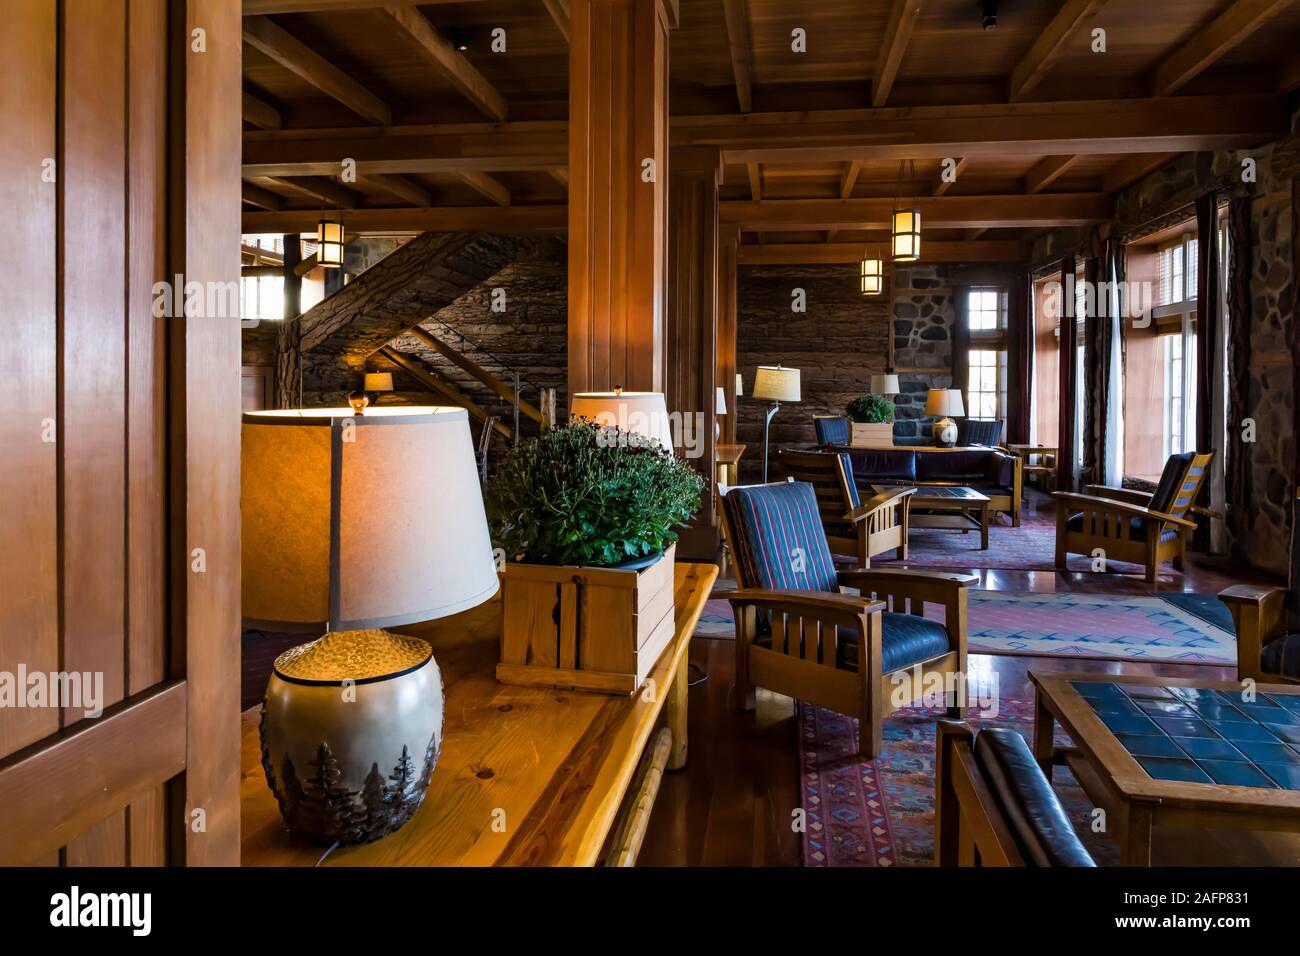 Rustic lobby of historic Crater Lake Lodge in Crater Lake National Park in Oregon, USA Stock Photo